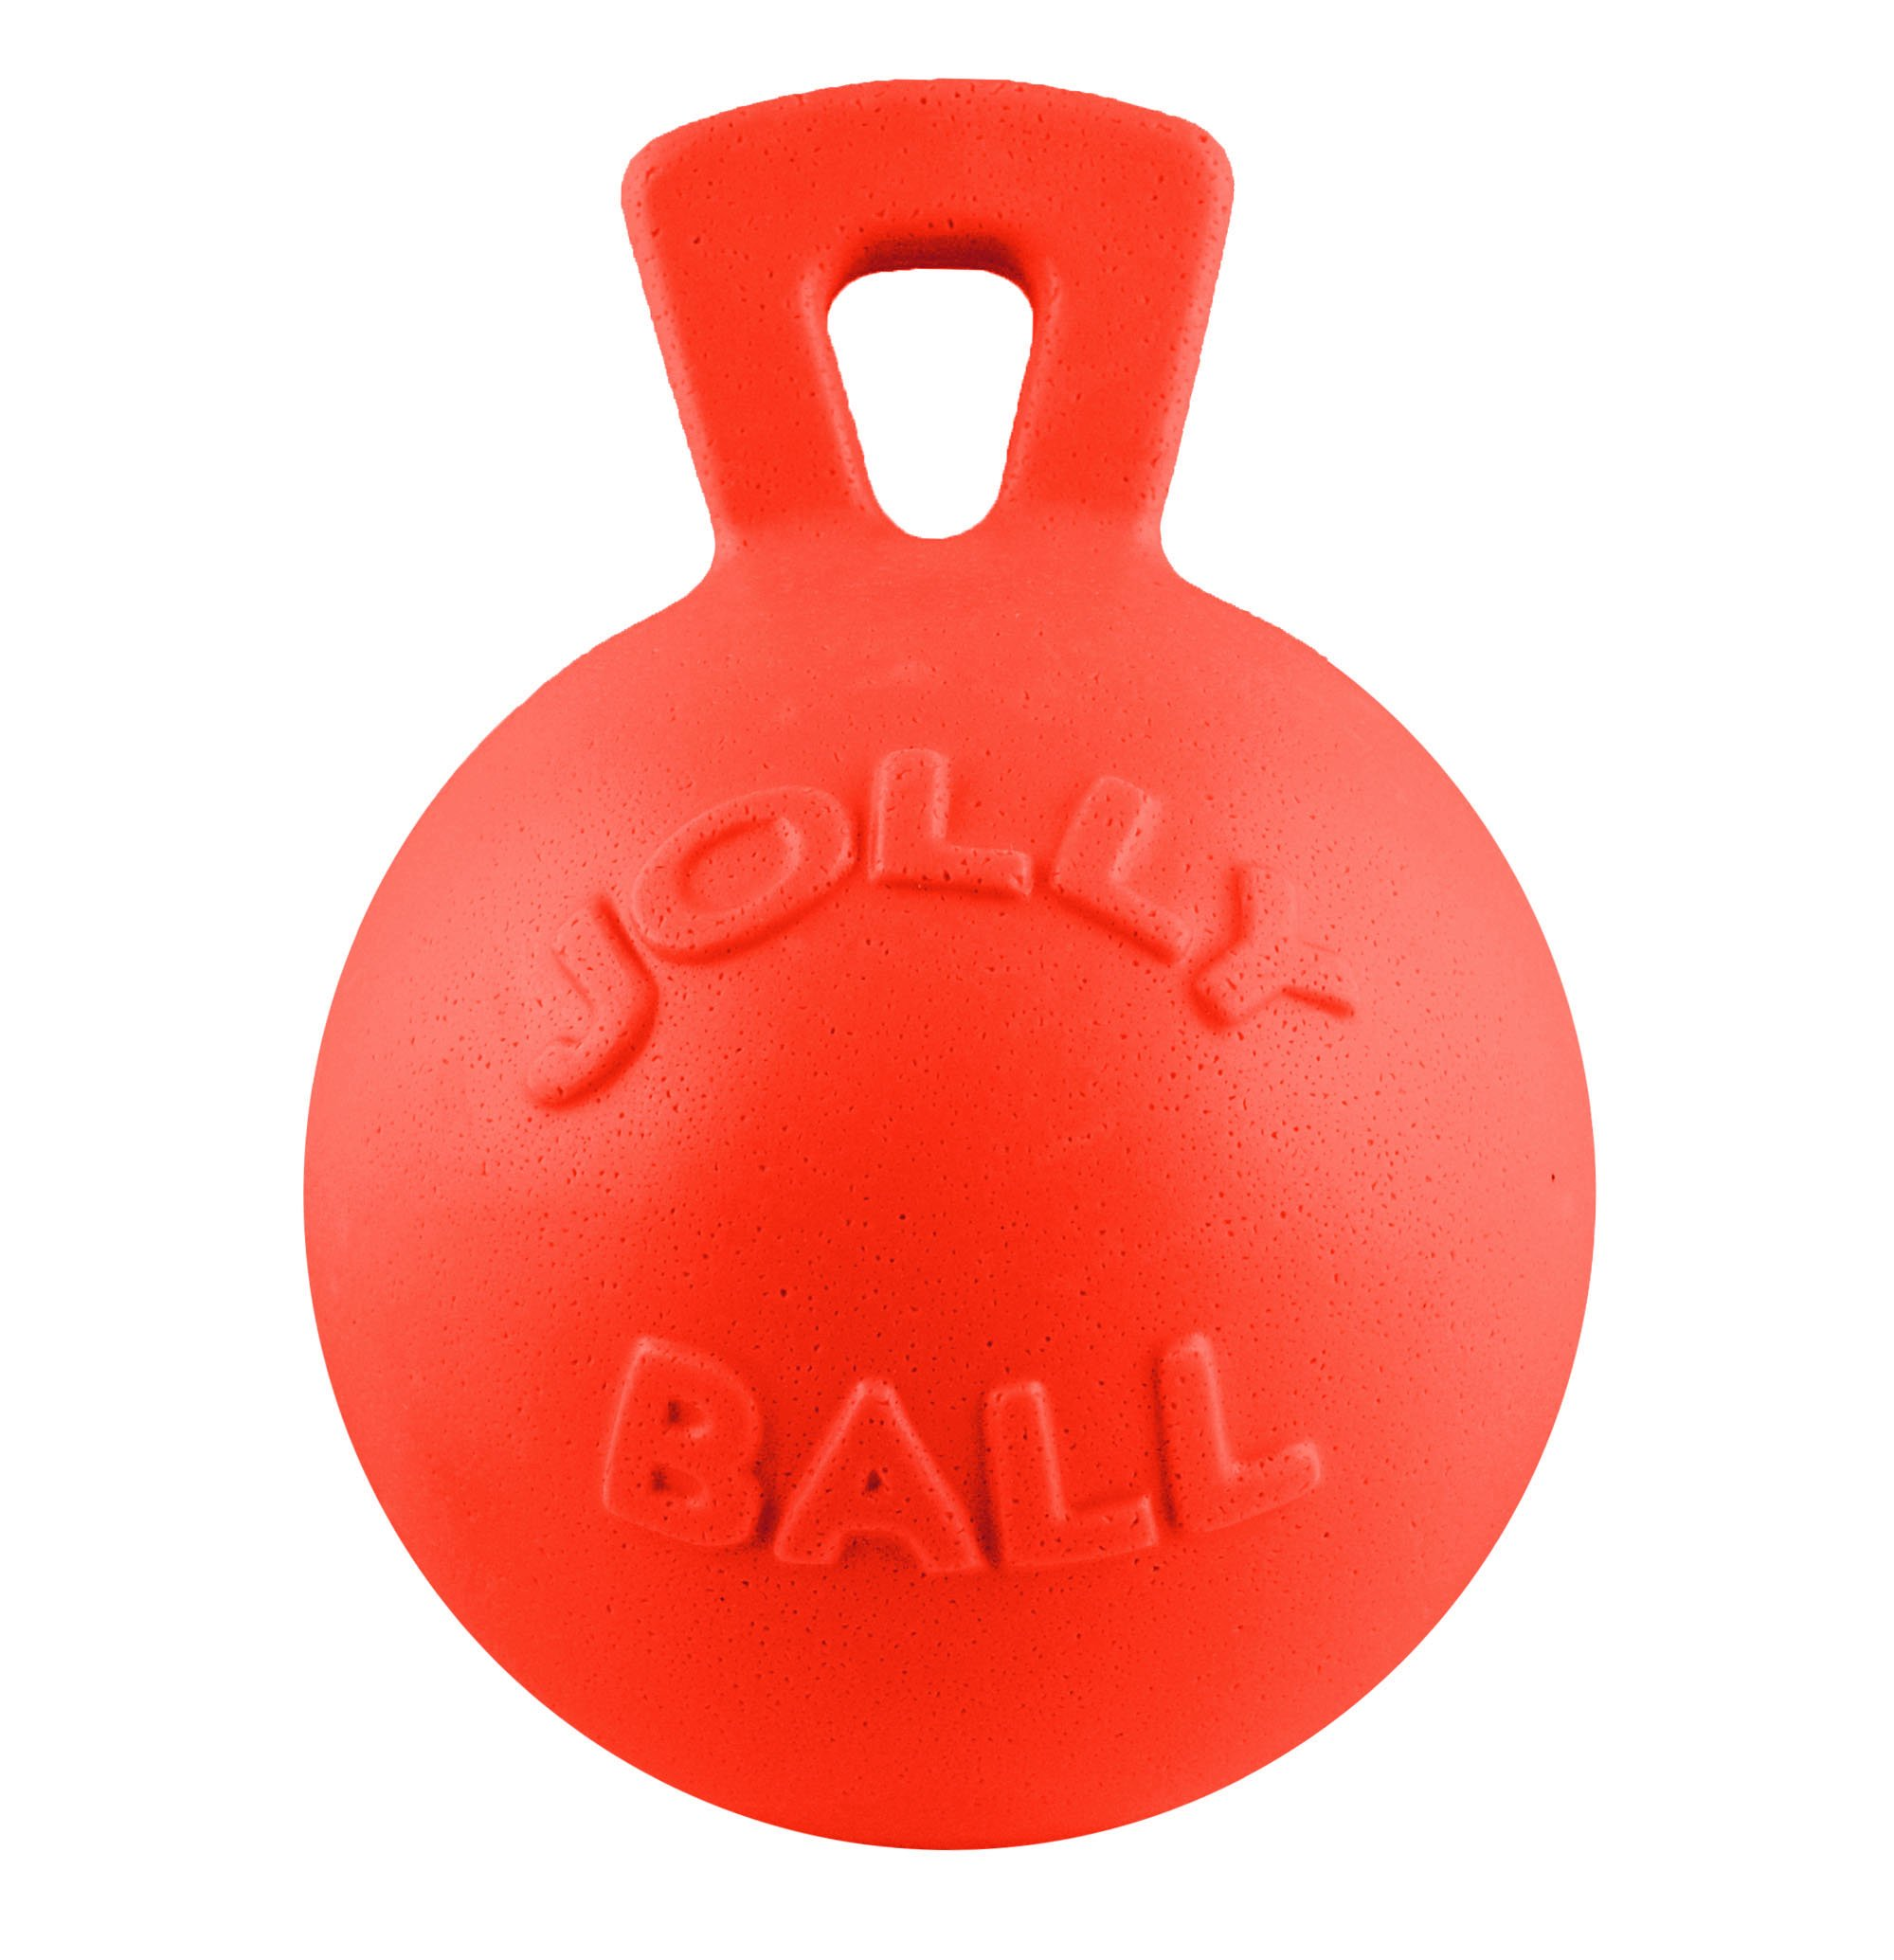 Jolly Pets Tug-n-Toss - Heavy Duty Chew Ball w/ Handle (Orange, 8'')